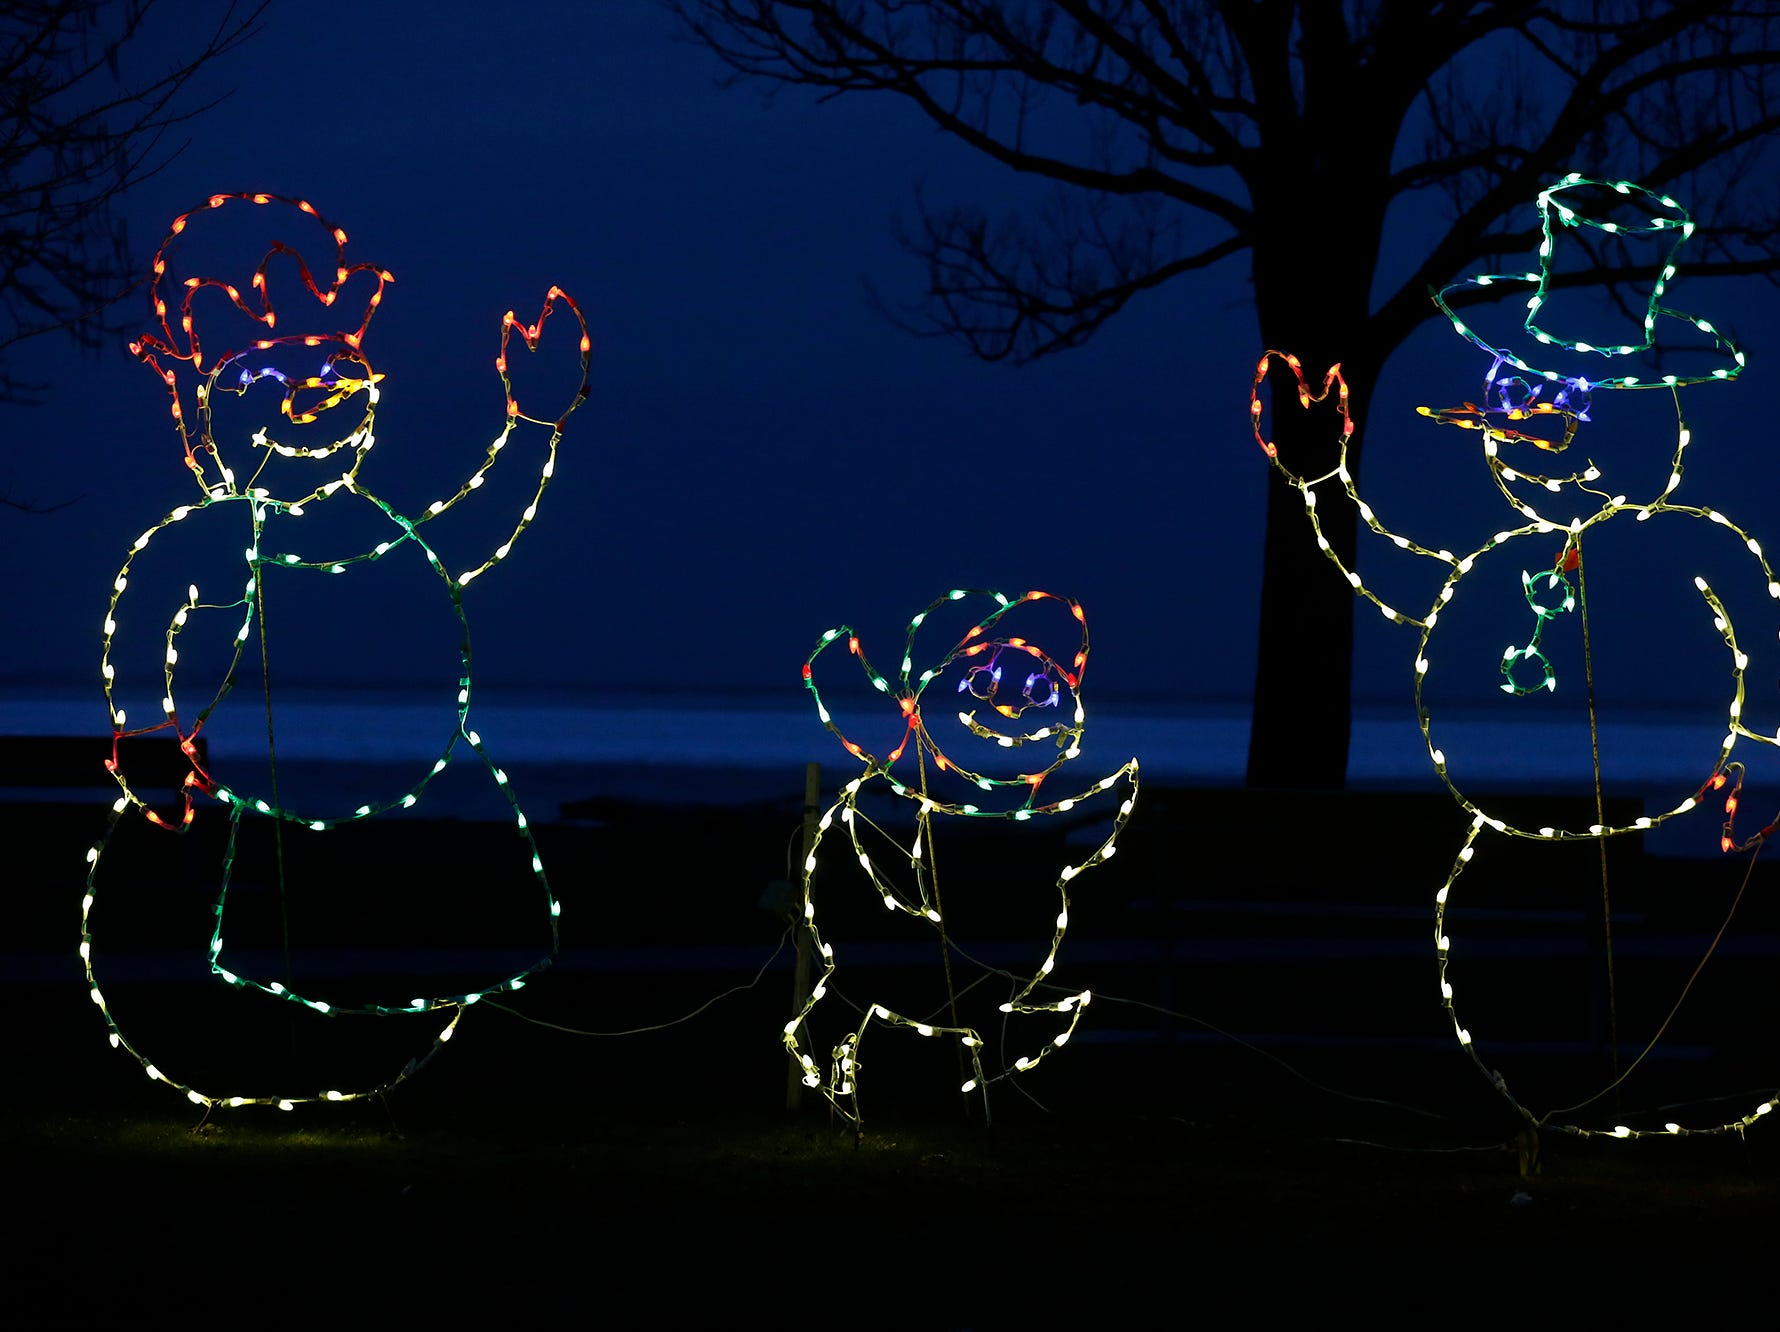 Holiday lights decorate Lakeside Park Nov. 28, in Fond du Lac, Wisconsin.